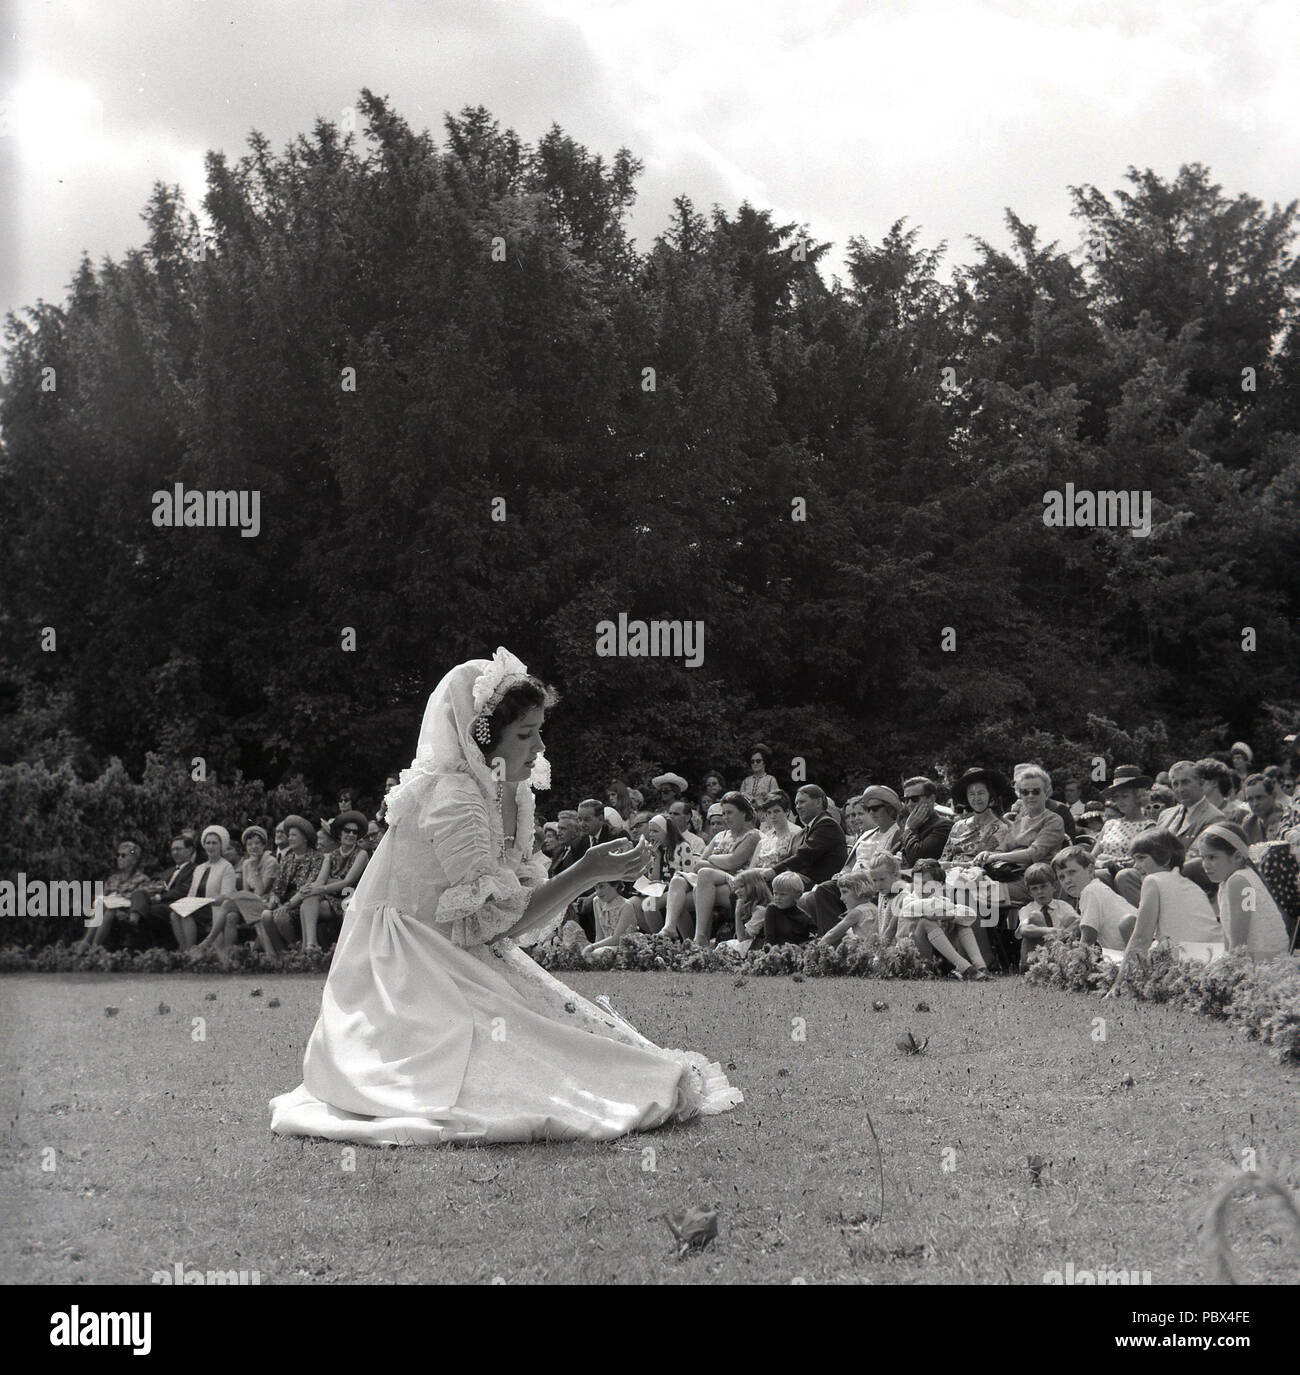 1964, Tring arts, a young girl performing in the open-air outside infront of a seated audience in the grounds of the Tring Park School for the Performing Arts, orginally the Arts Educational School. - Stock Image